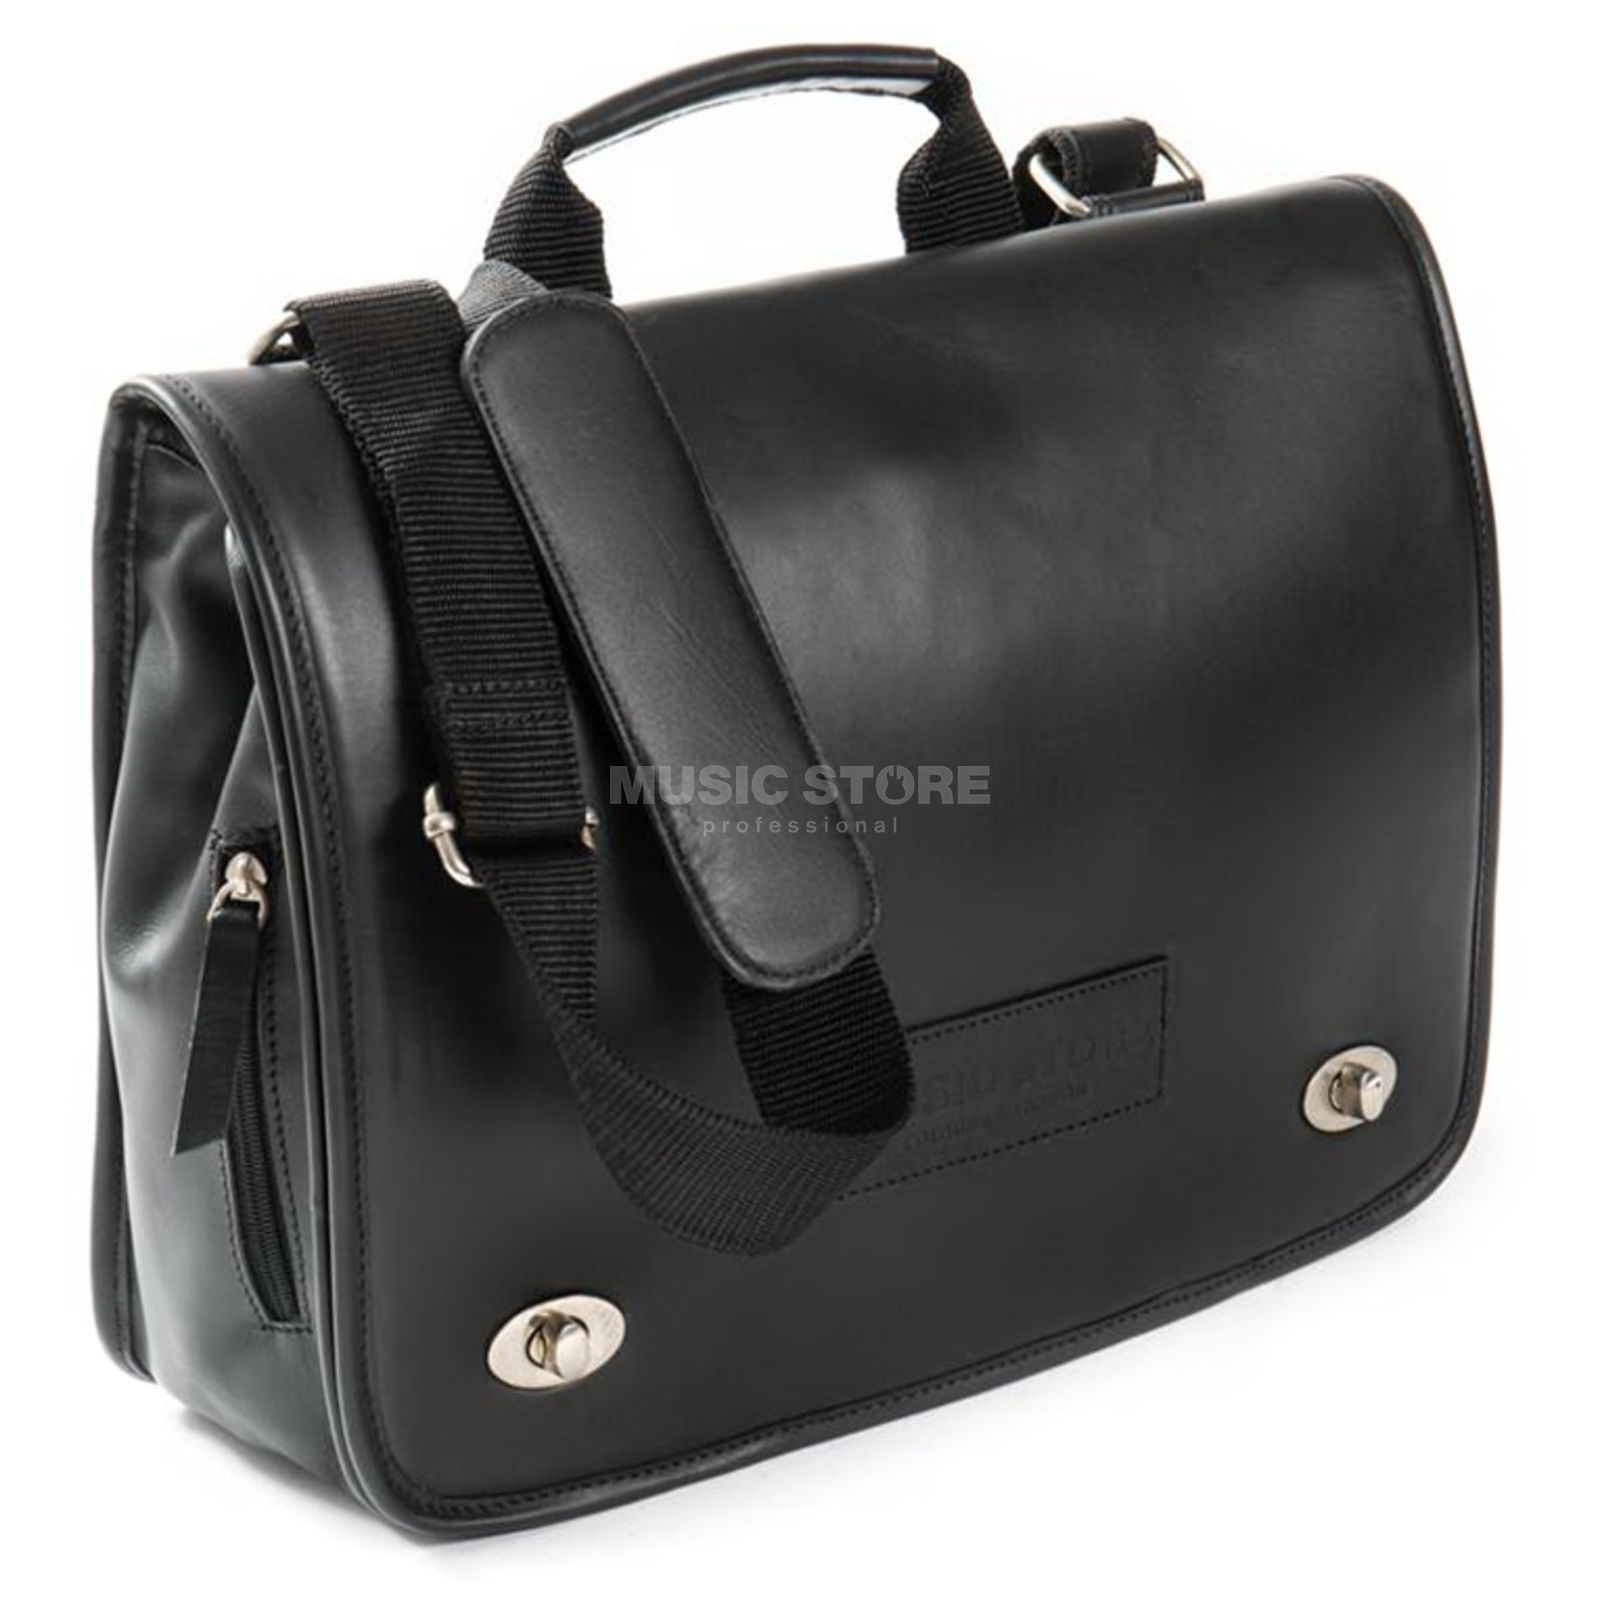 MUSIC STORE Executive Bag Leather Black EXB-01MBK/L Imagem do produto